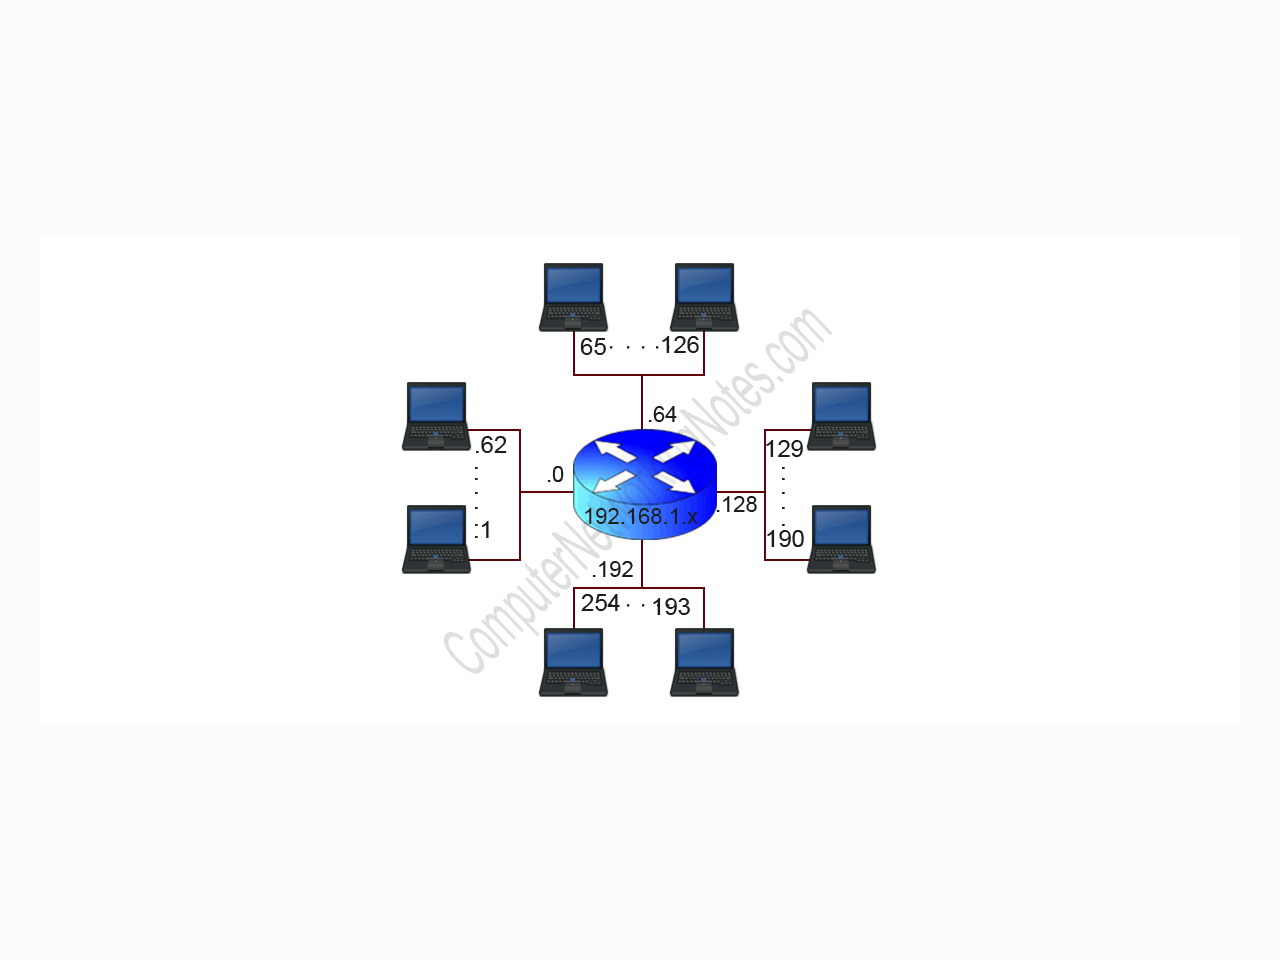 hight resolution of subnet mask diagram